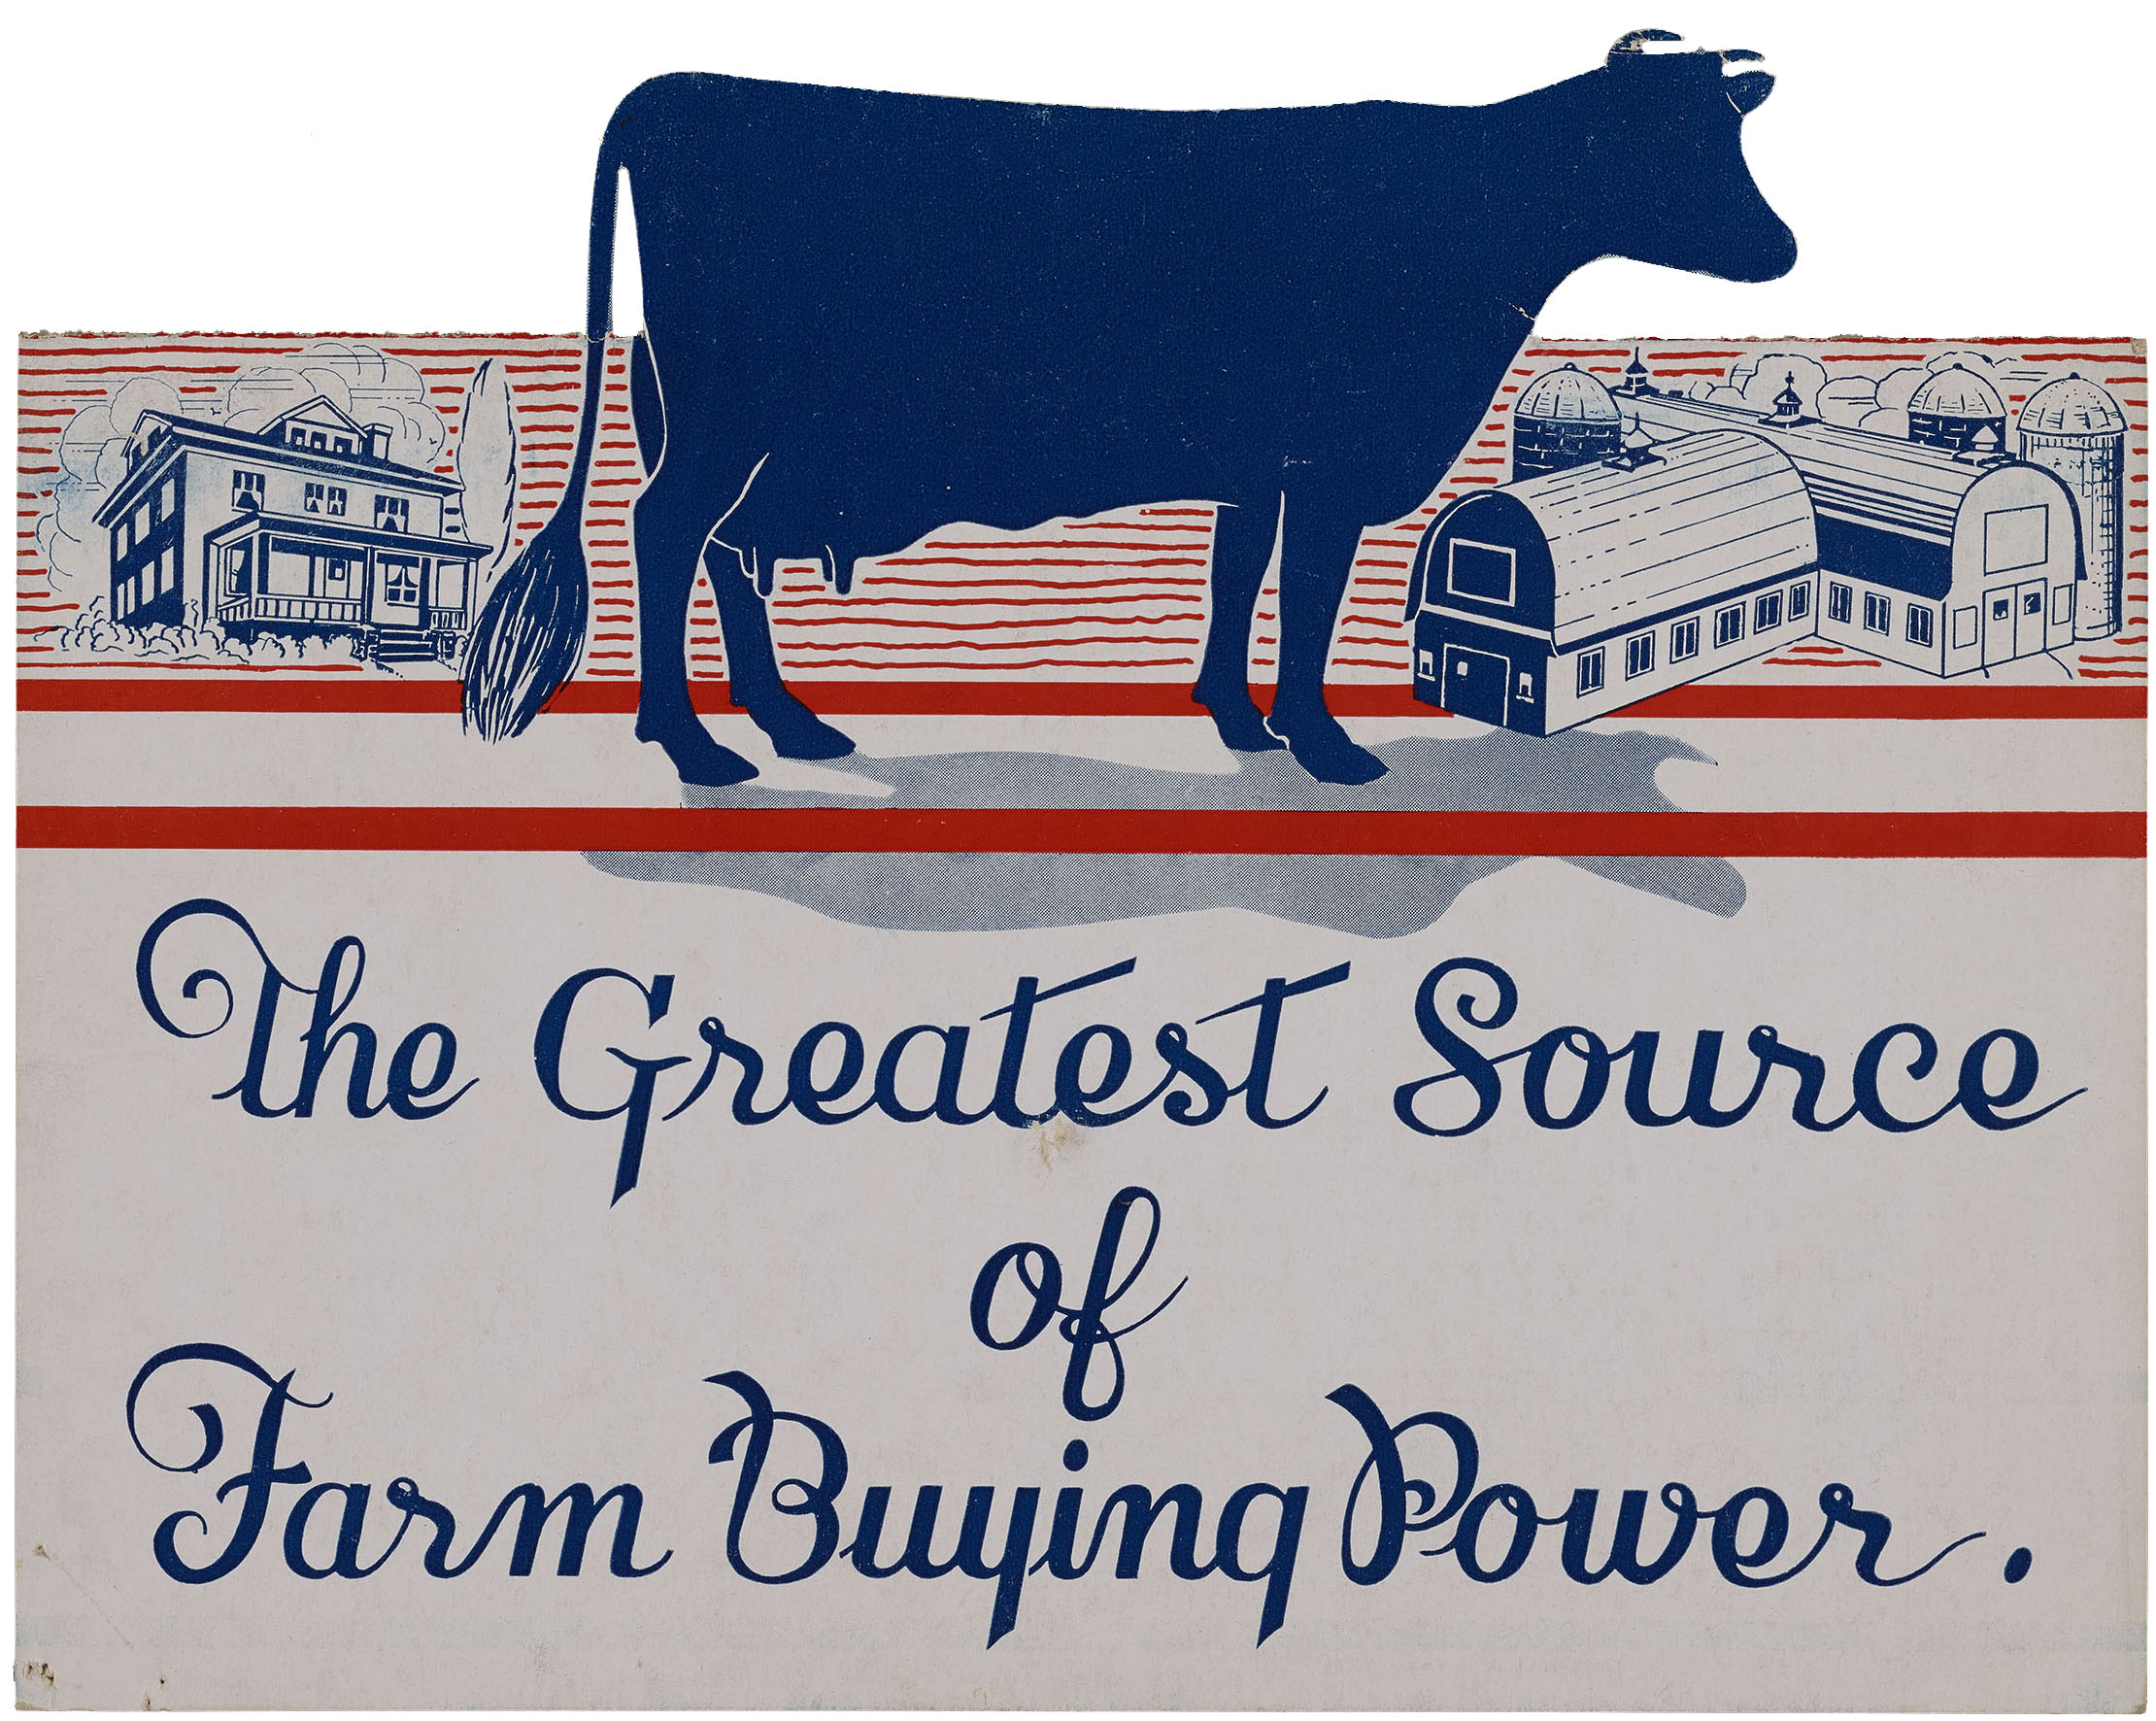 Promotional milk brochure, 1939. WPA Federal Writers' Project Collection, NYC Municipal Archives.